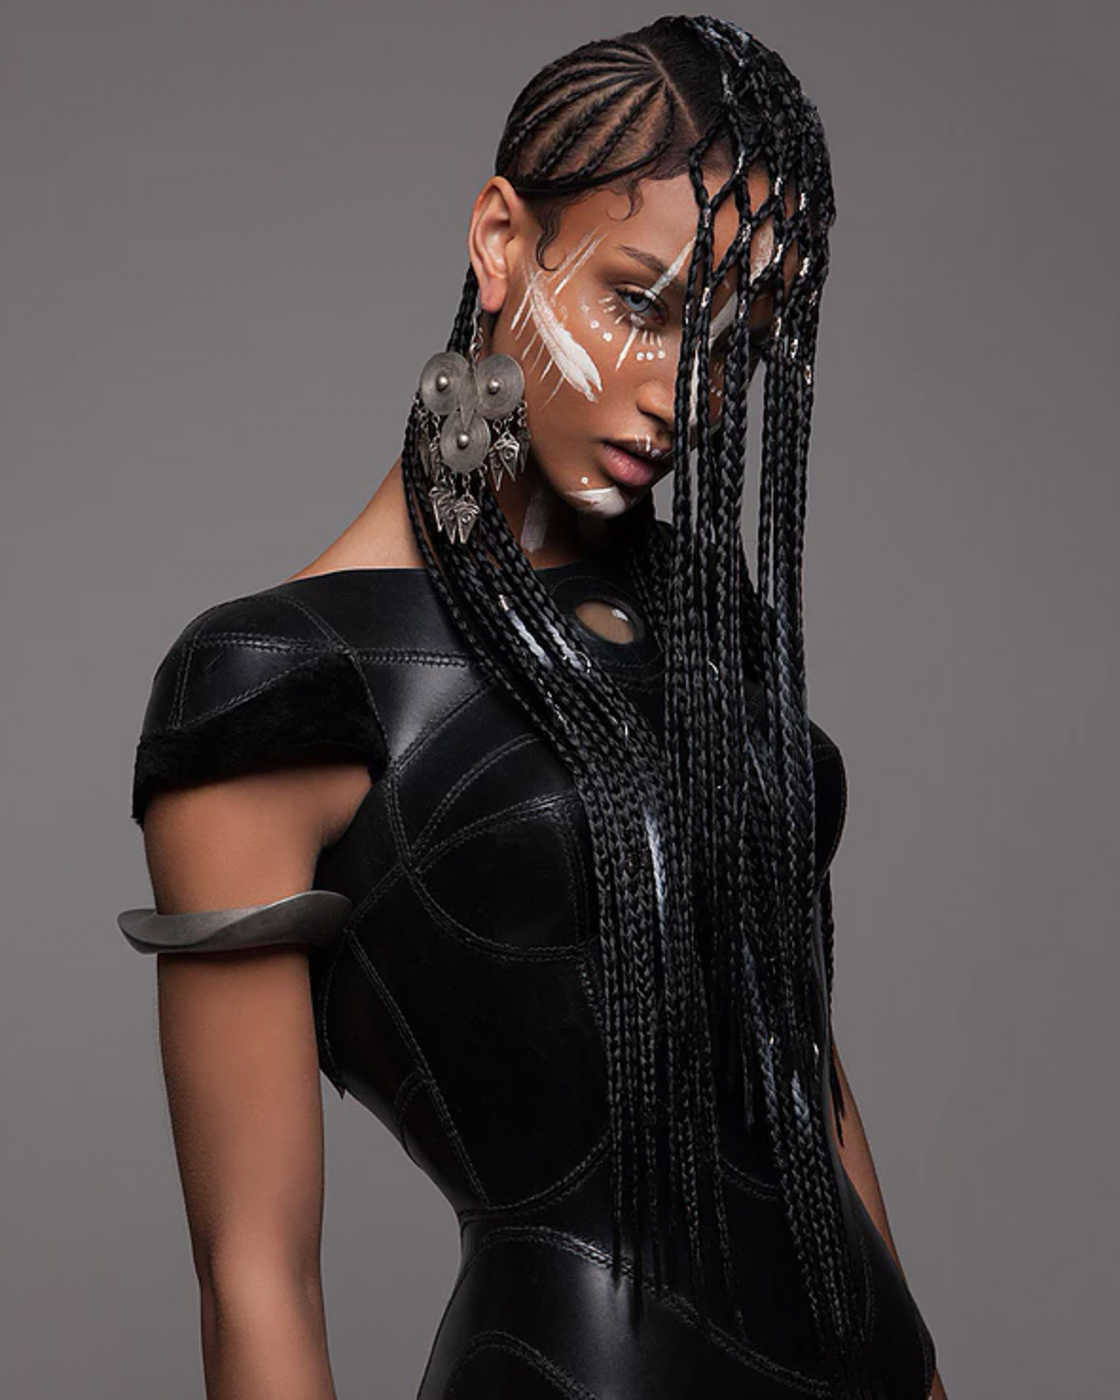 Afro Amour Collection - The incredible afro hairstyles by Lisa Farrall